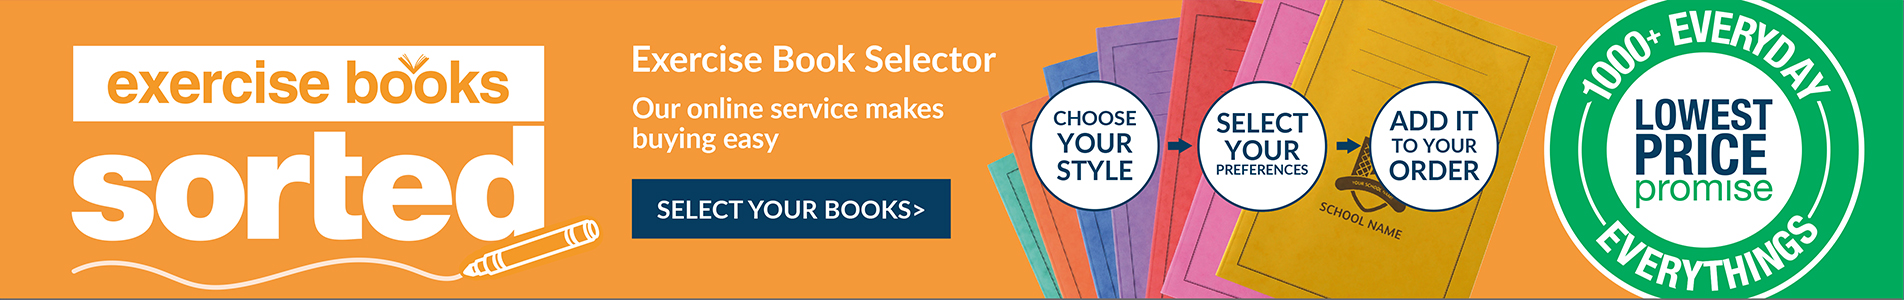 Make buying exercise books easy with our Exercise Book Selector